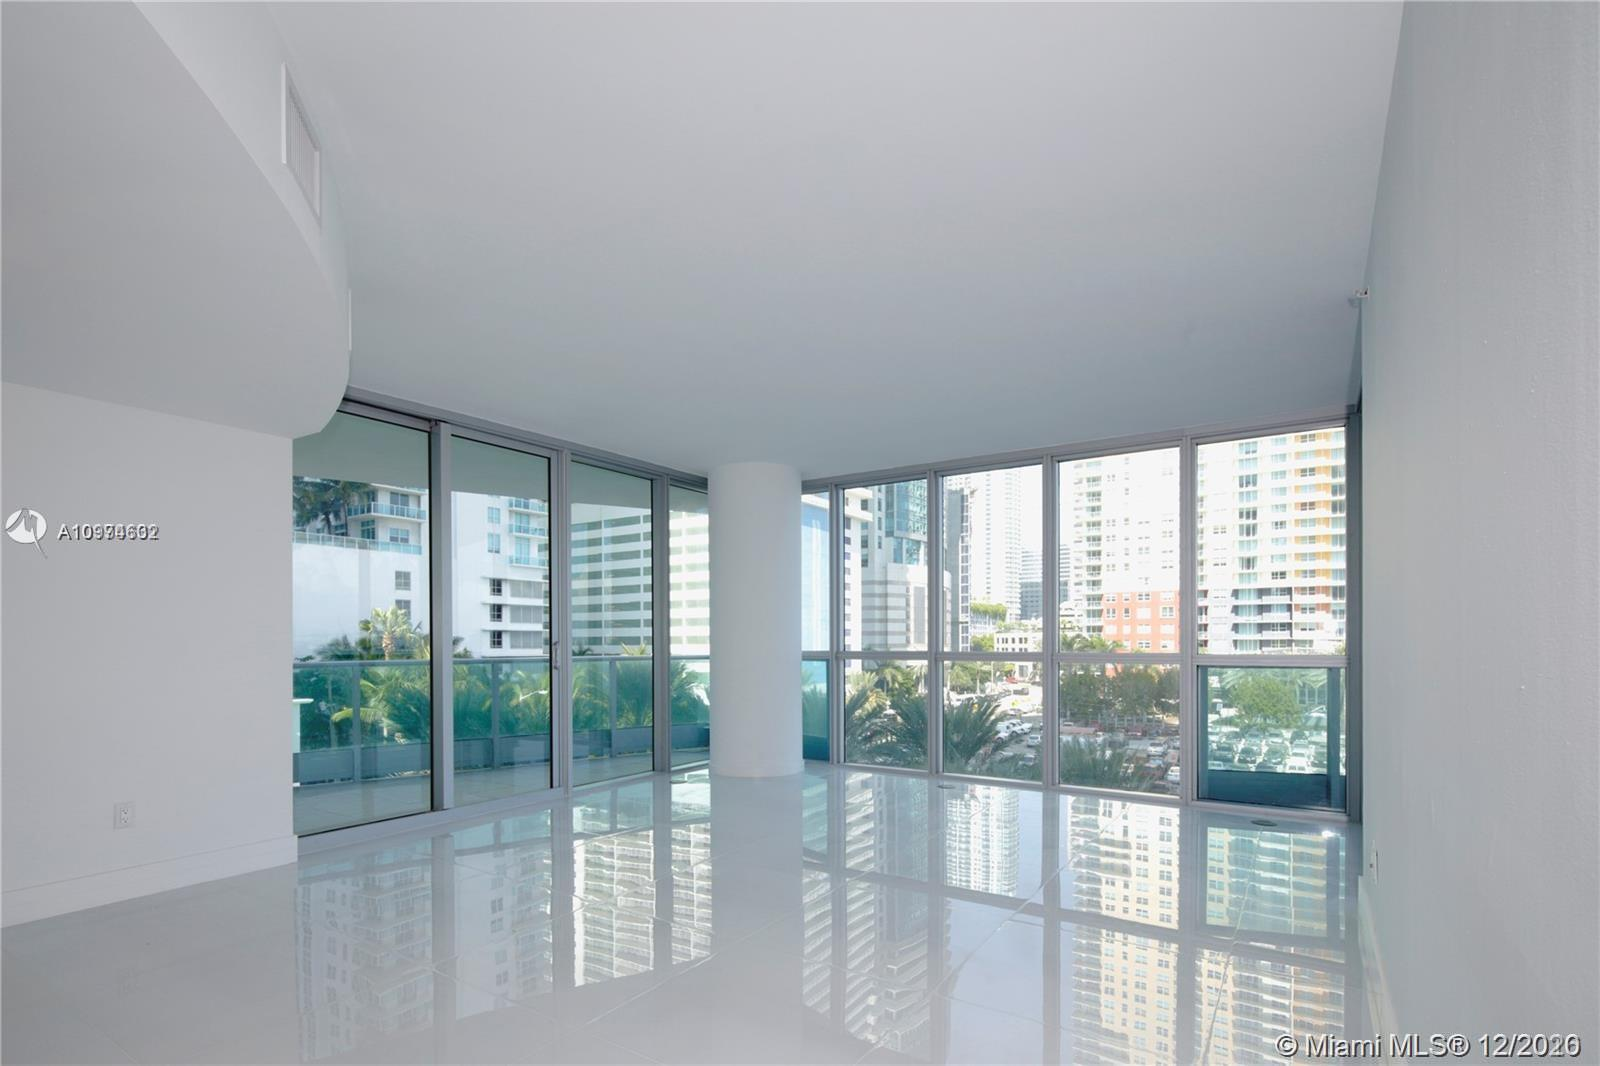 Exclusive luxury apartment in the heart of Brickell district. City & Bay views. 9'high ceilings. New